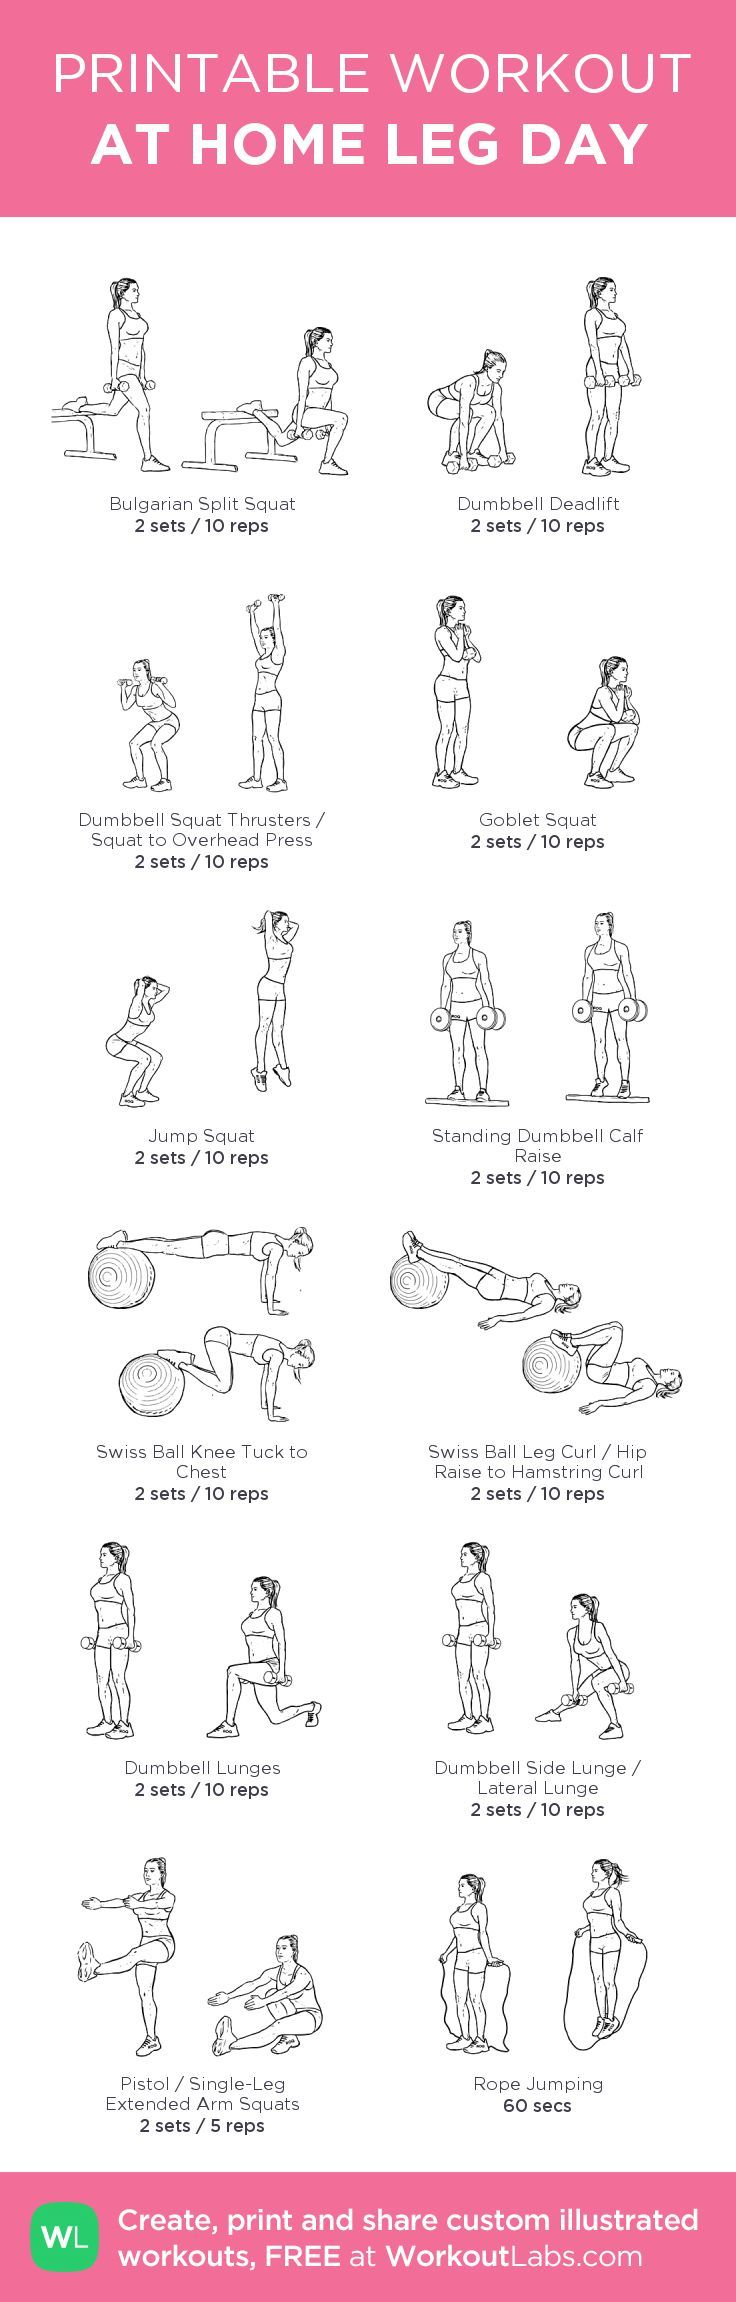 Dumbbell Exercise Poster Laminated Workout Strength ...